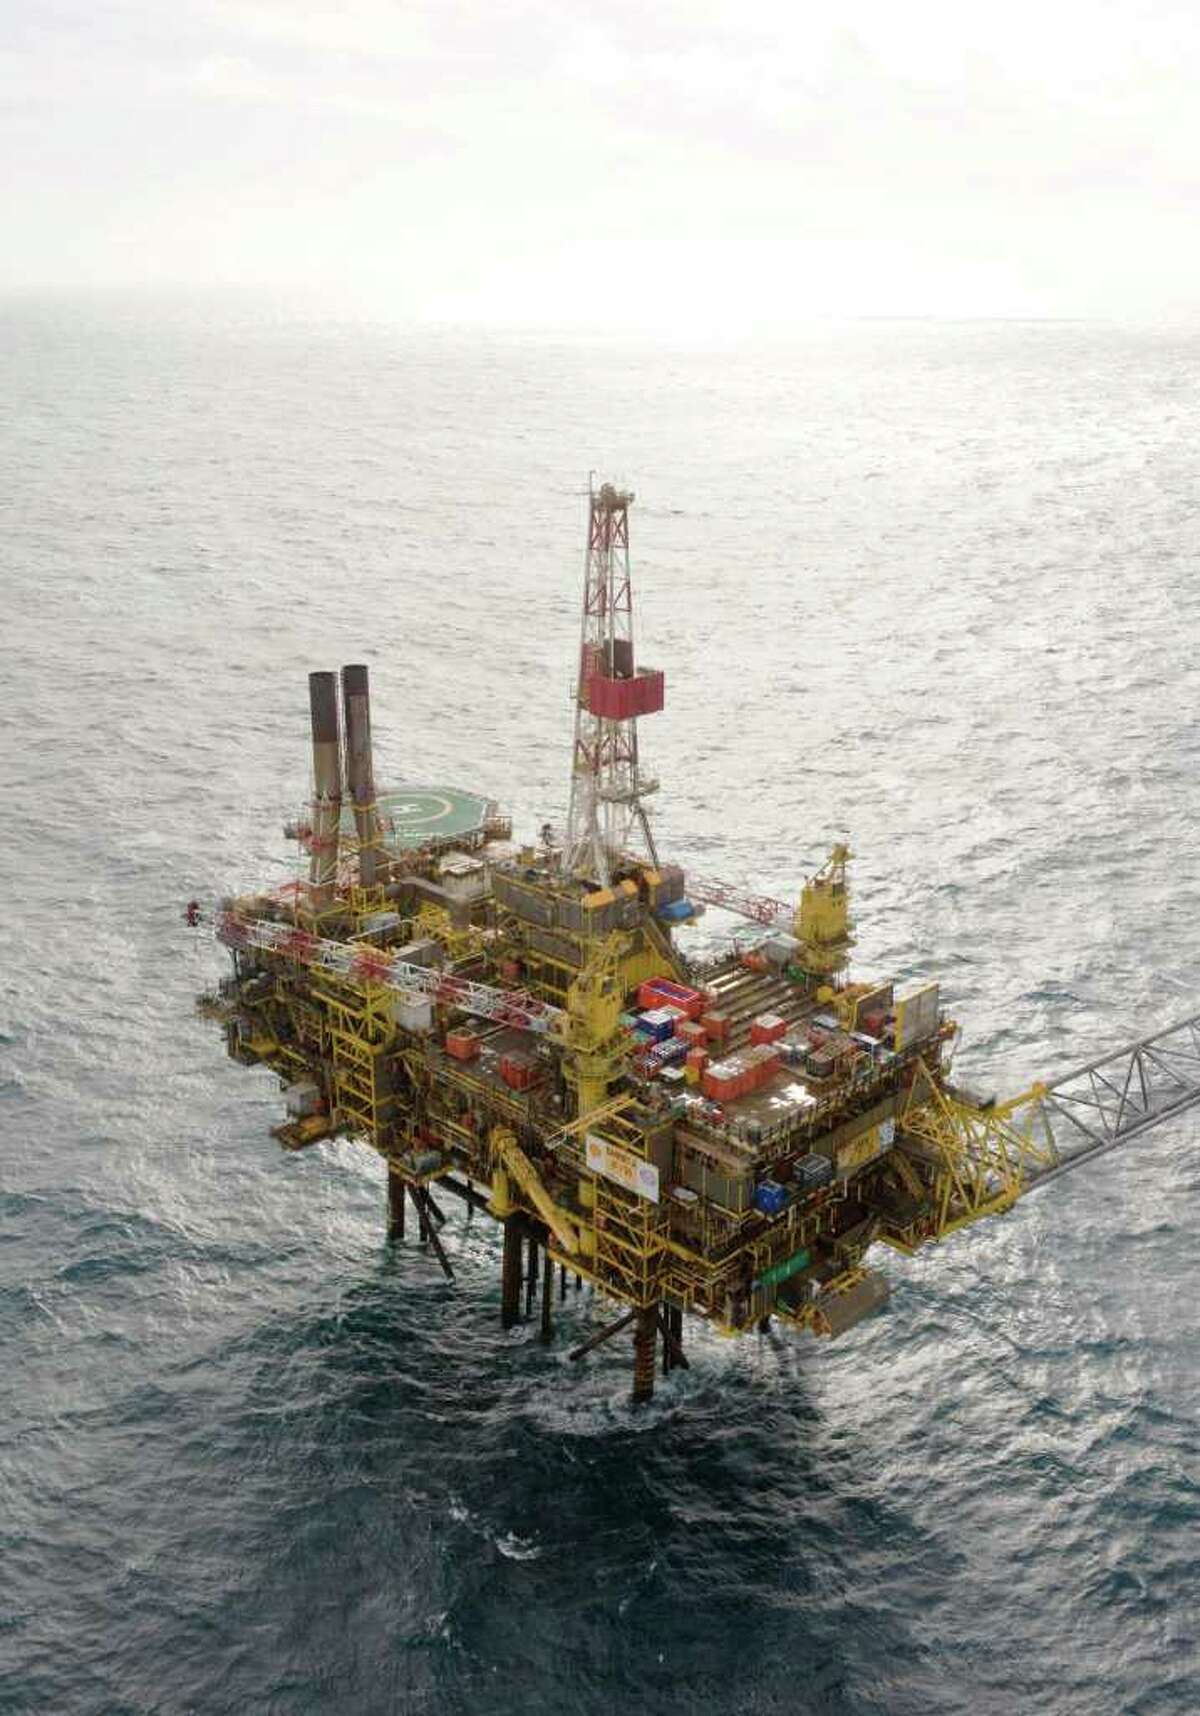 """RESTRICTED TO EDITORIAL USE - MANDATORY CREDIT """" AFP PHOTO / SHELL - KEN TAYLOR - VIA ANP"""" - NO MARKETING NO ADVERTISING CAMPAIGNS - DISTRIBUTED AS A SERVICE TO CLIENTS A picture released by Shell shows the Gannet Alpha platform in the North Sea. Shell was battling an oil leak in a North Sea pipeline off the British coast on August 13, 2011 the Anglo-Dutch oil giant company said. The leak was discovered Wednesday after an oil sheen was spotted on the surface near the Gannet Alpha production platform, 112 miles (180 kilometres) east of Aberdeen, on the Scottish east coast. AFP PHOTO / SHELL VIA ANP (Photo credit should read Ken Taylor/AFP/Getty Images)"""